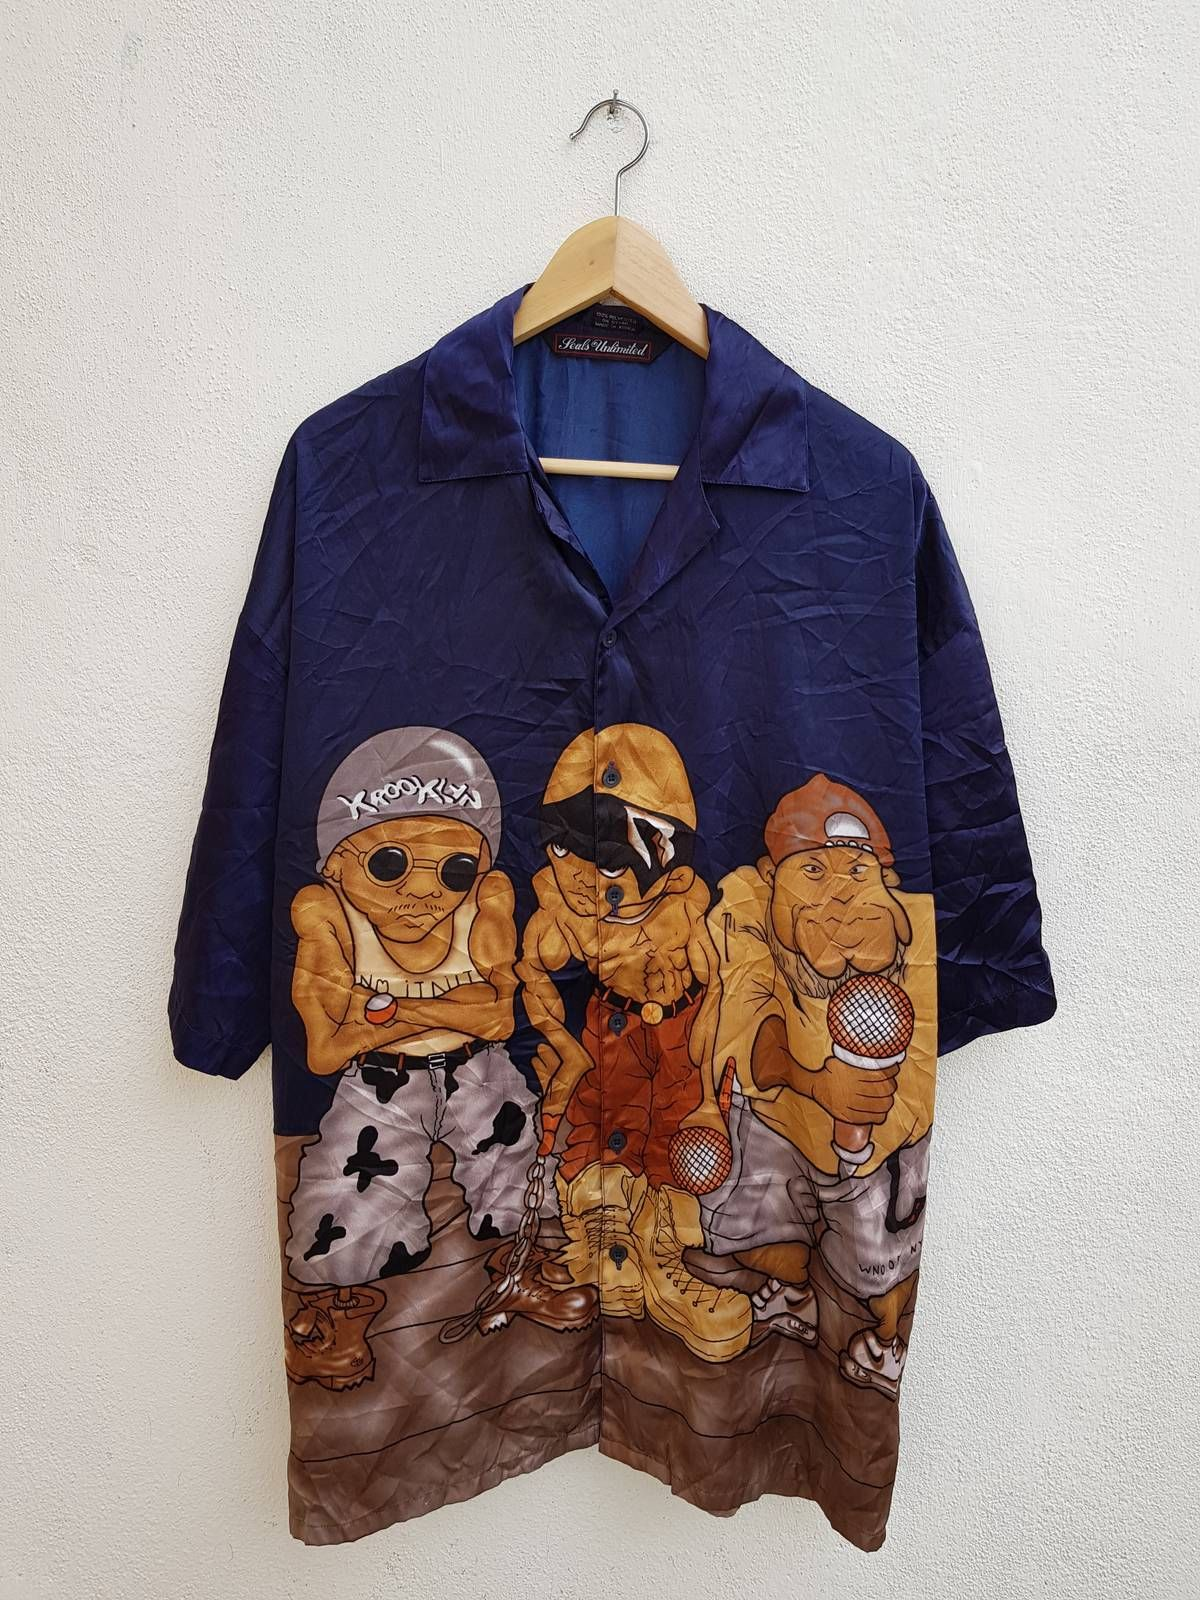 1b4218878c0a Searching for Vintage 90s Seals Unlimited Full Printed Dancer Street Rap  Hip-Hop Swag Men's Shirt Size L? We've got Japanese Brand tops starting at  $51 and ...